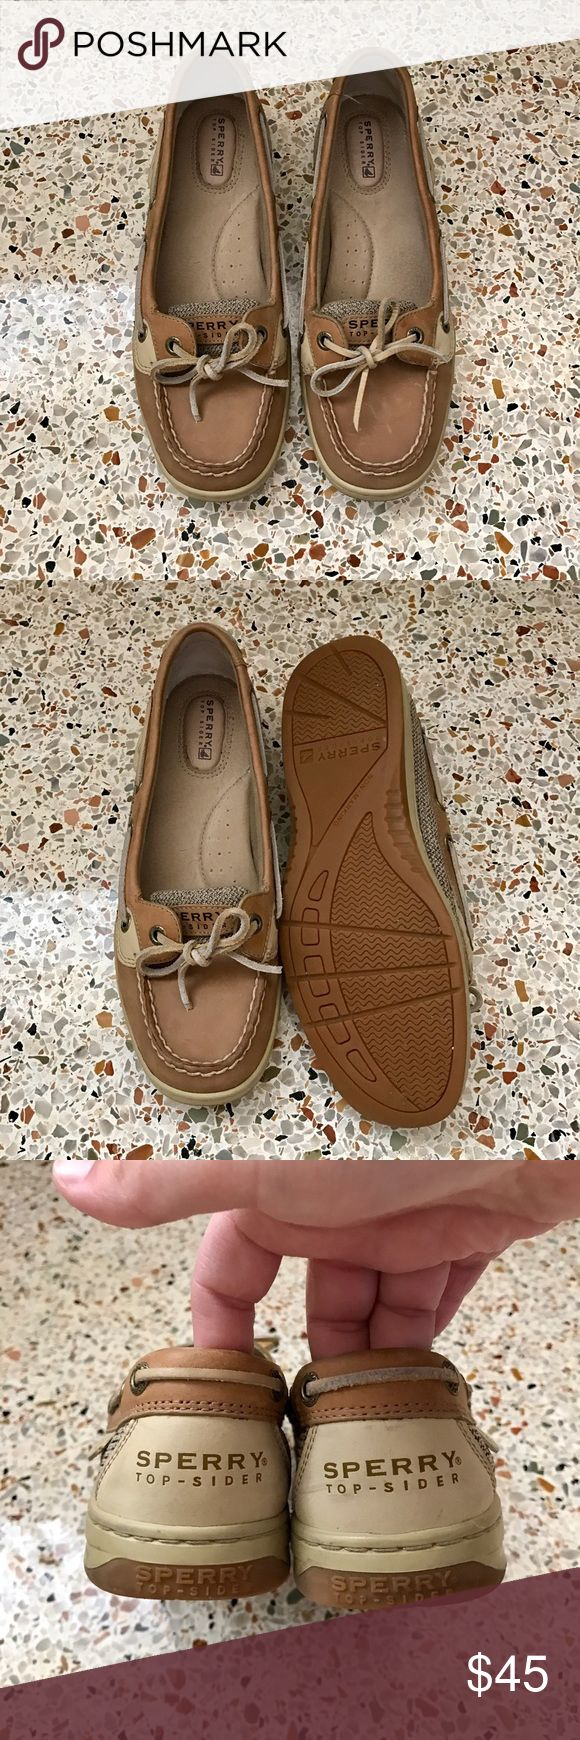 Women's Sperry Boat Shoes 7.5M Women's Classic Sperry Boat Shoes.  Excellent condition, with little wear.  Open to offers & ask questions!  ☺️💕 Sperry Top-Sider Shoes